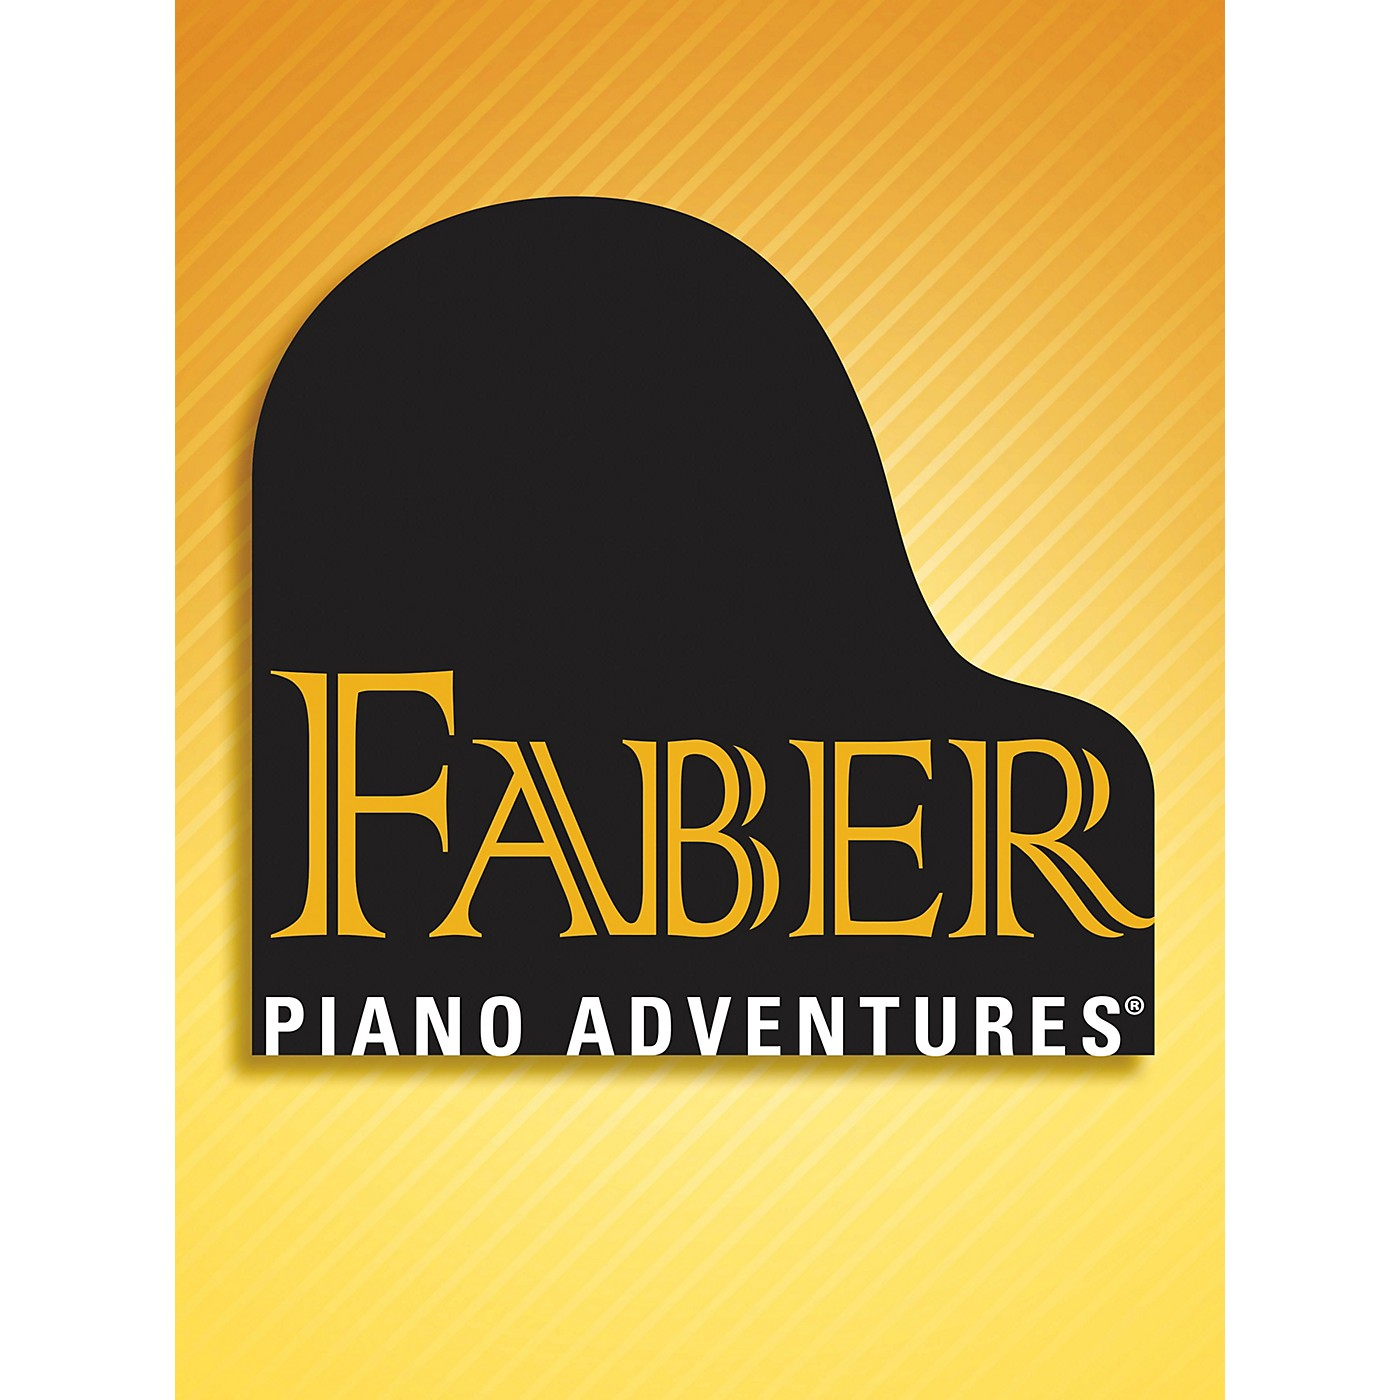 Faber Piano Adventures Level 3B - Popular Repertoire MIDI Disk Faber Piano Adventures® Series Disk by Nancy Faber thumbnail